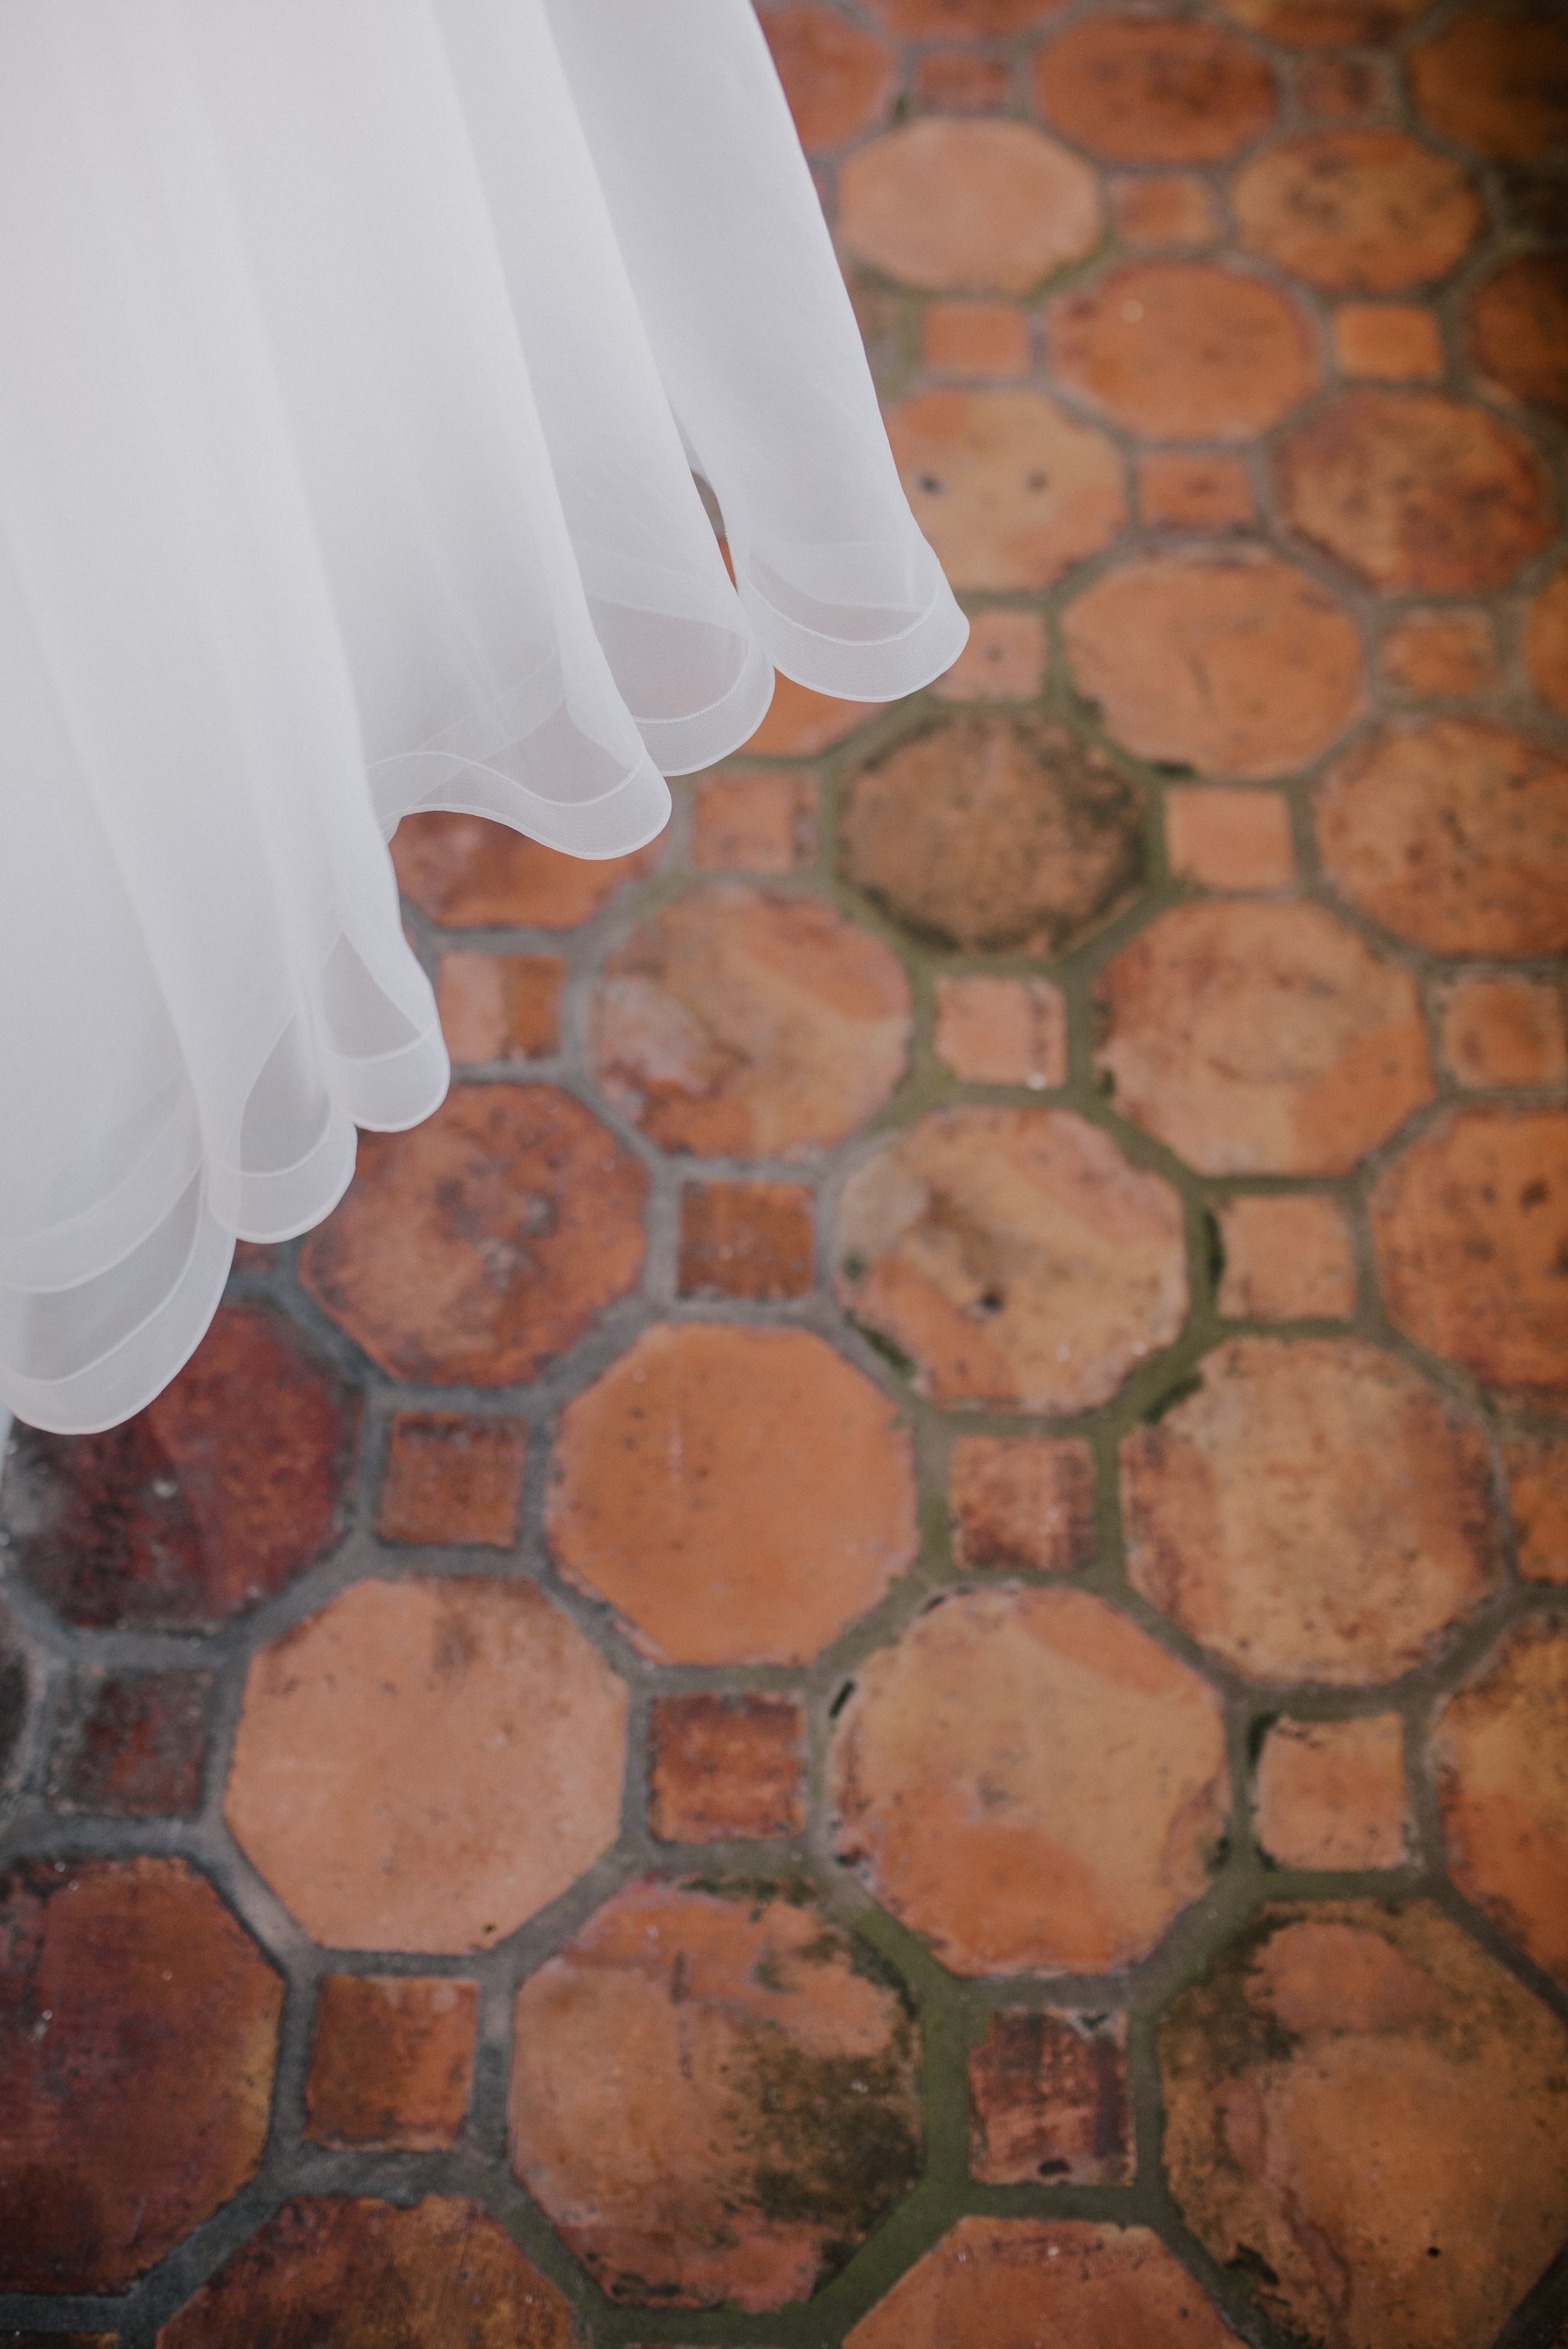 neworleans-wedding-at-il-mercado-by-007themastersinlove.JPG